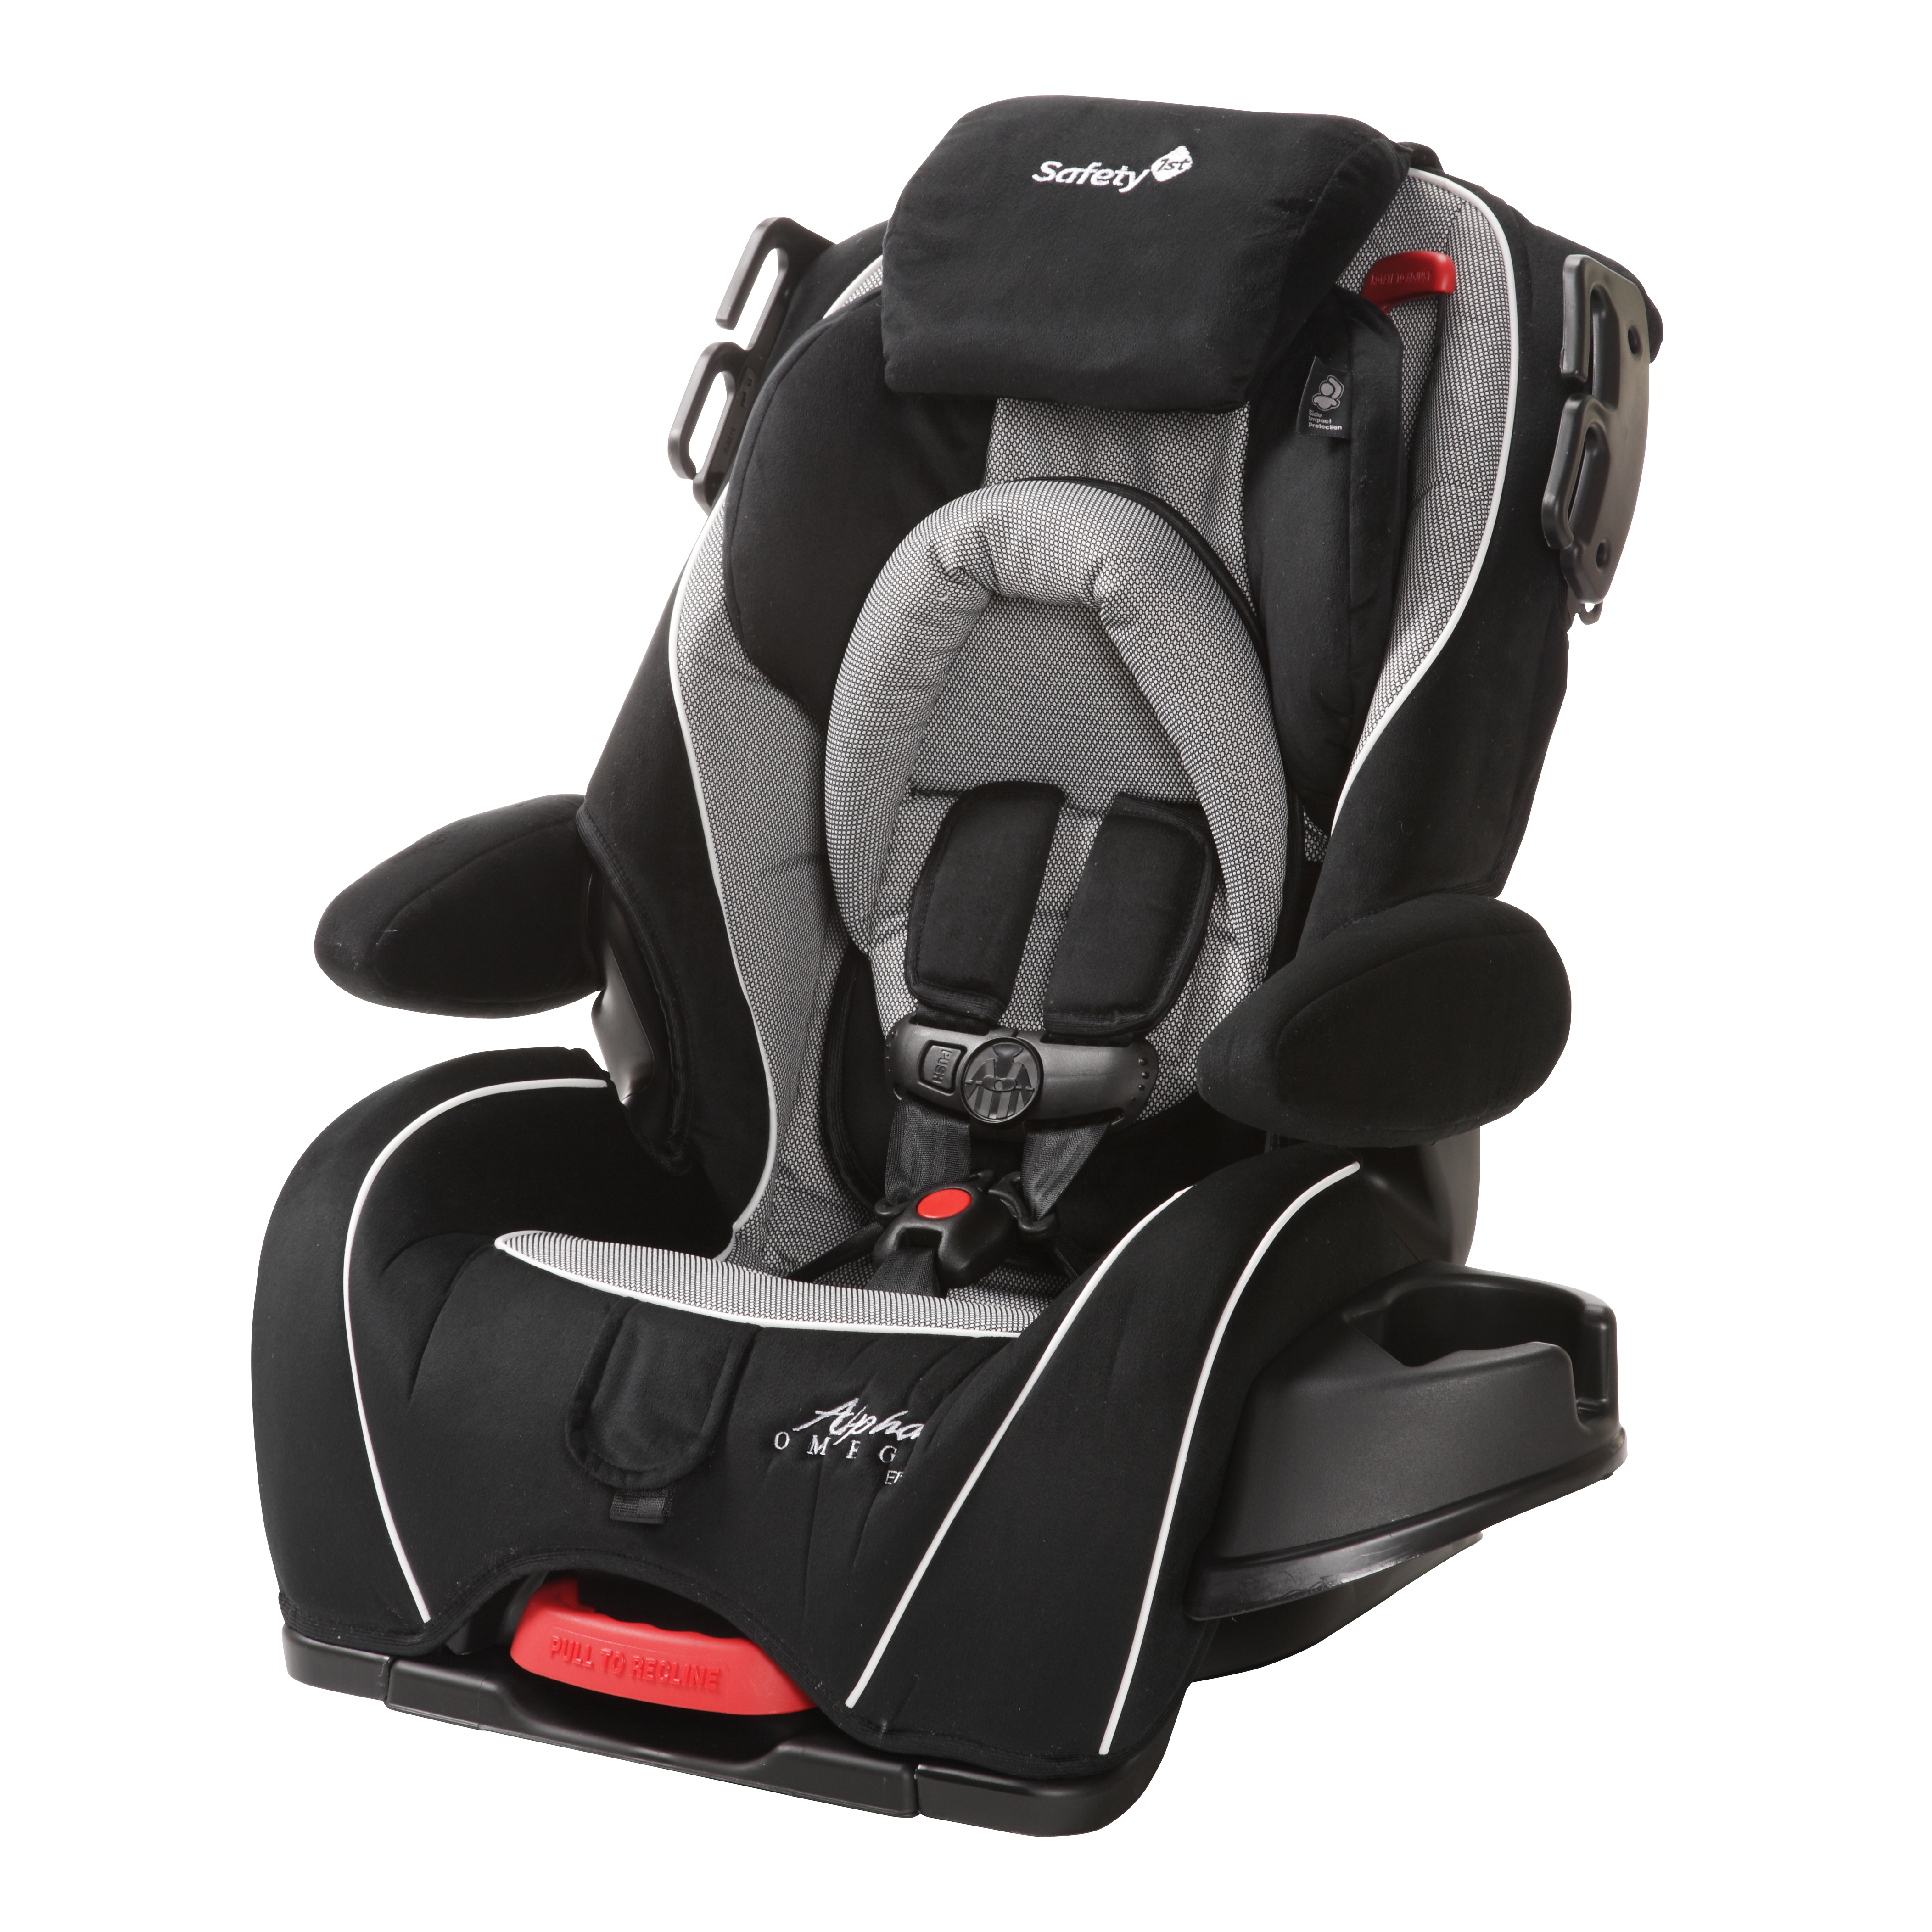 Safety 1�ᵗ Alpha Omega Elite Convertible Car Seat, Quartz by Safety 1st